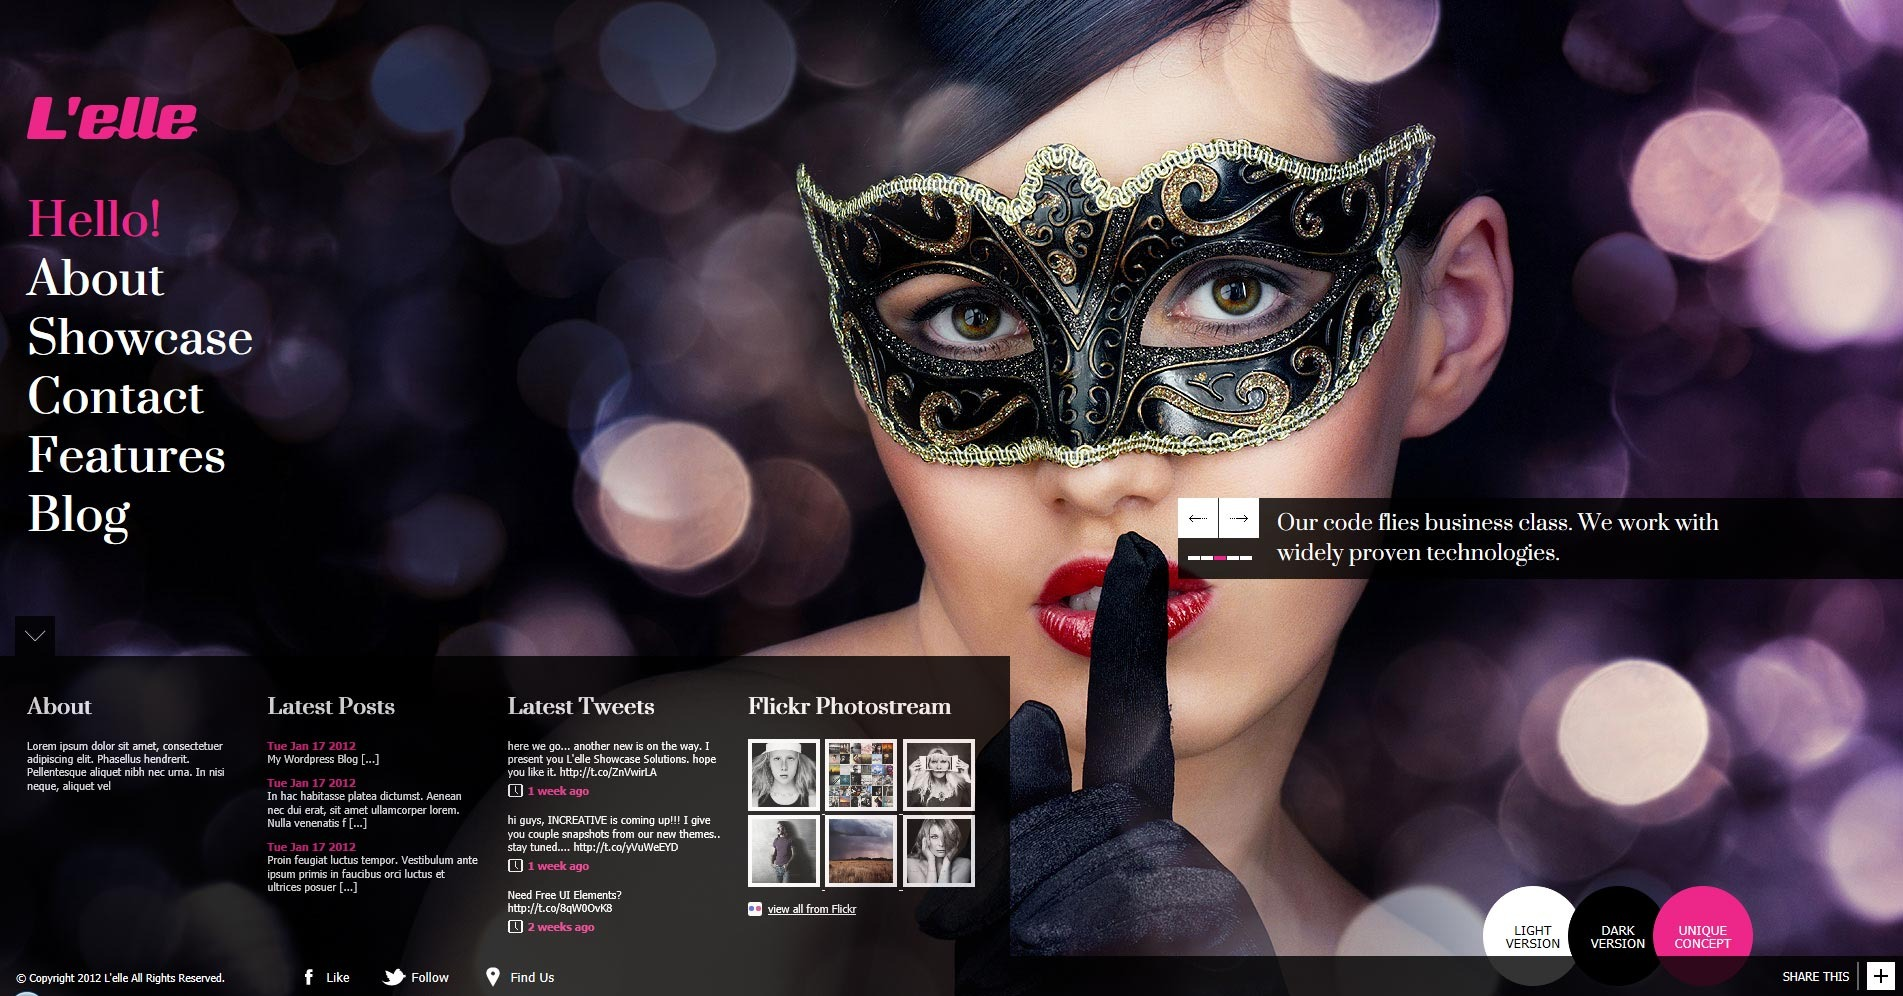 L'elle Creative Agency Showcase - homepage with flyout footer menu bar opened